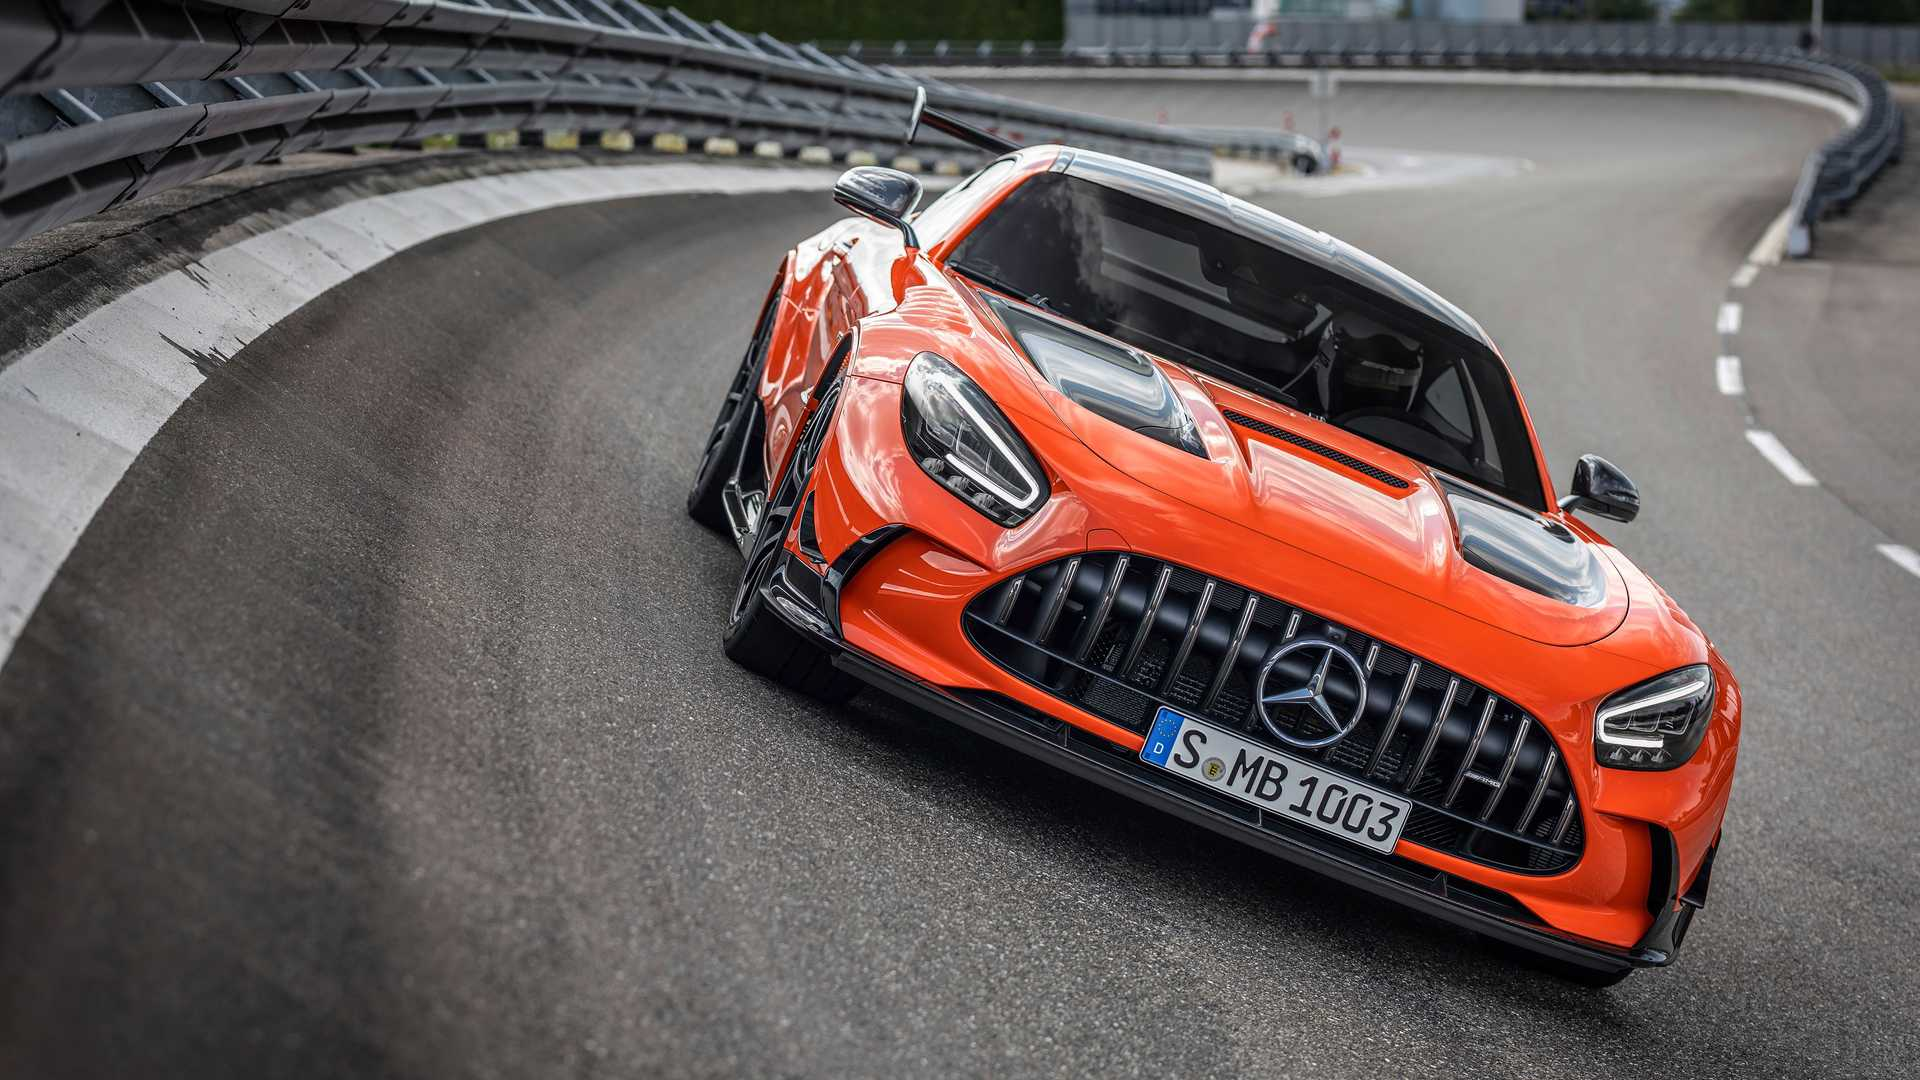 2014 - [Mercedes-AMG] GT [C190] - Page 33 2021-mercedes-amg-gt-black-series-on-track